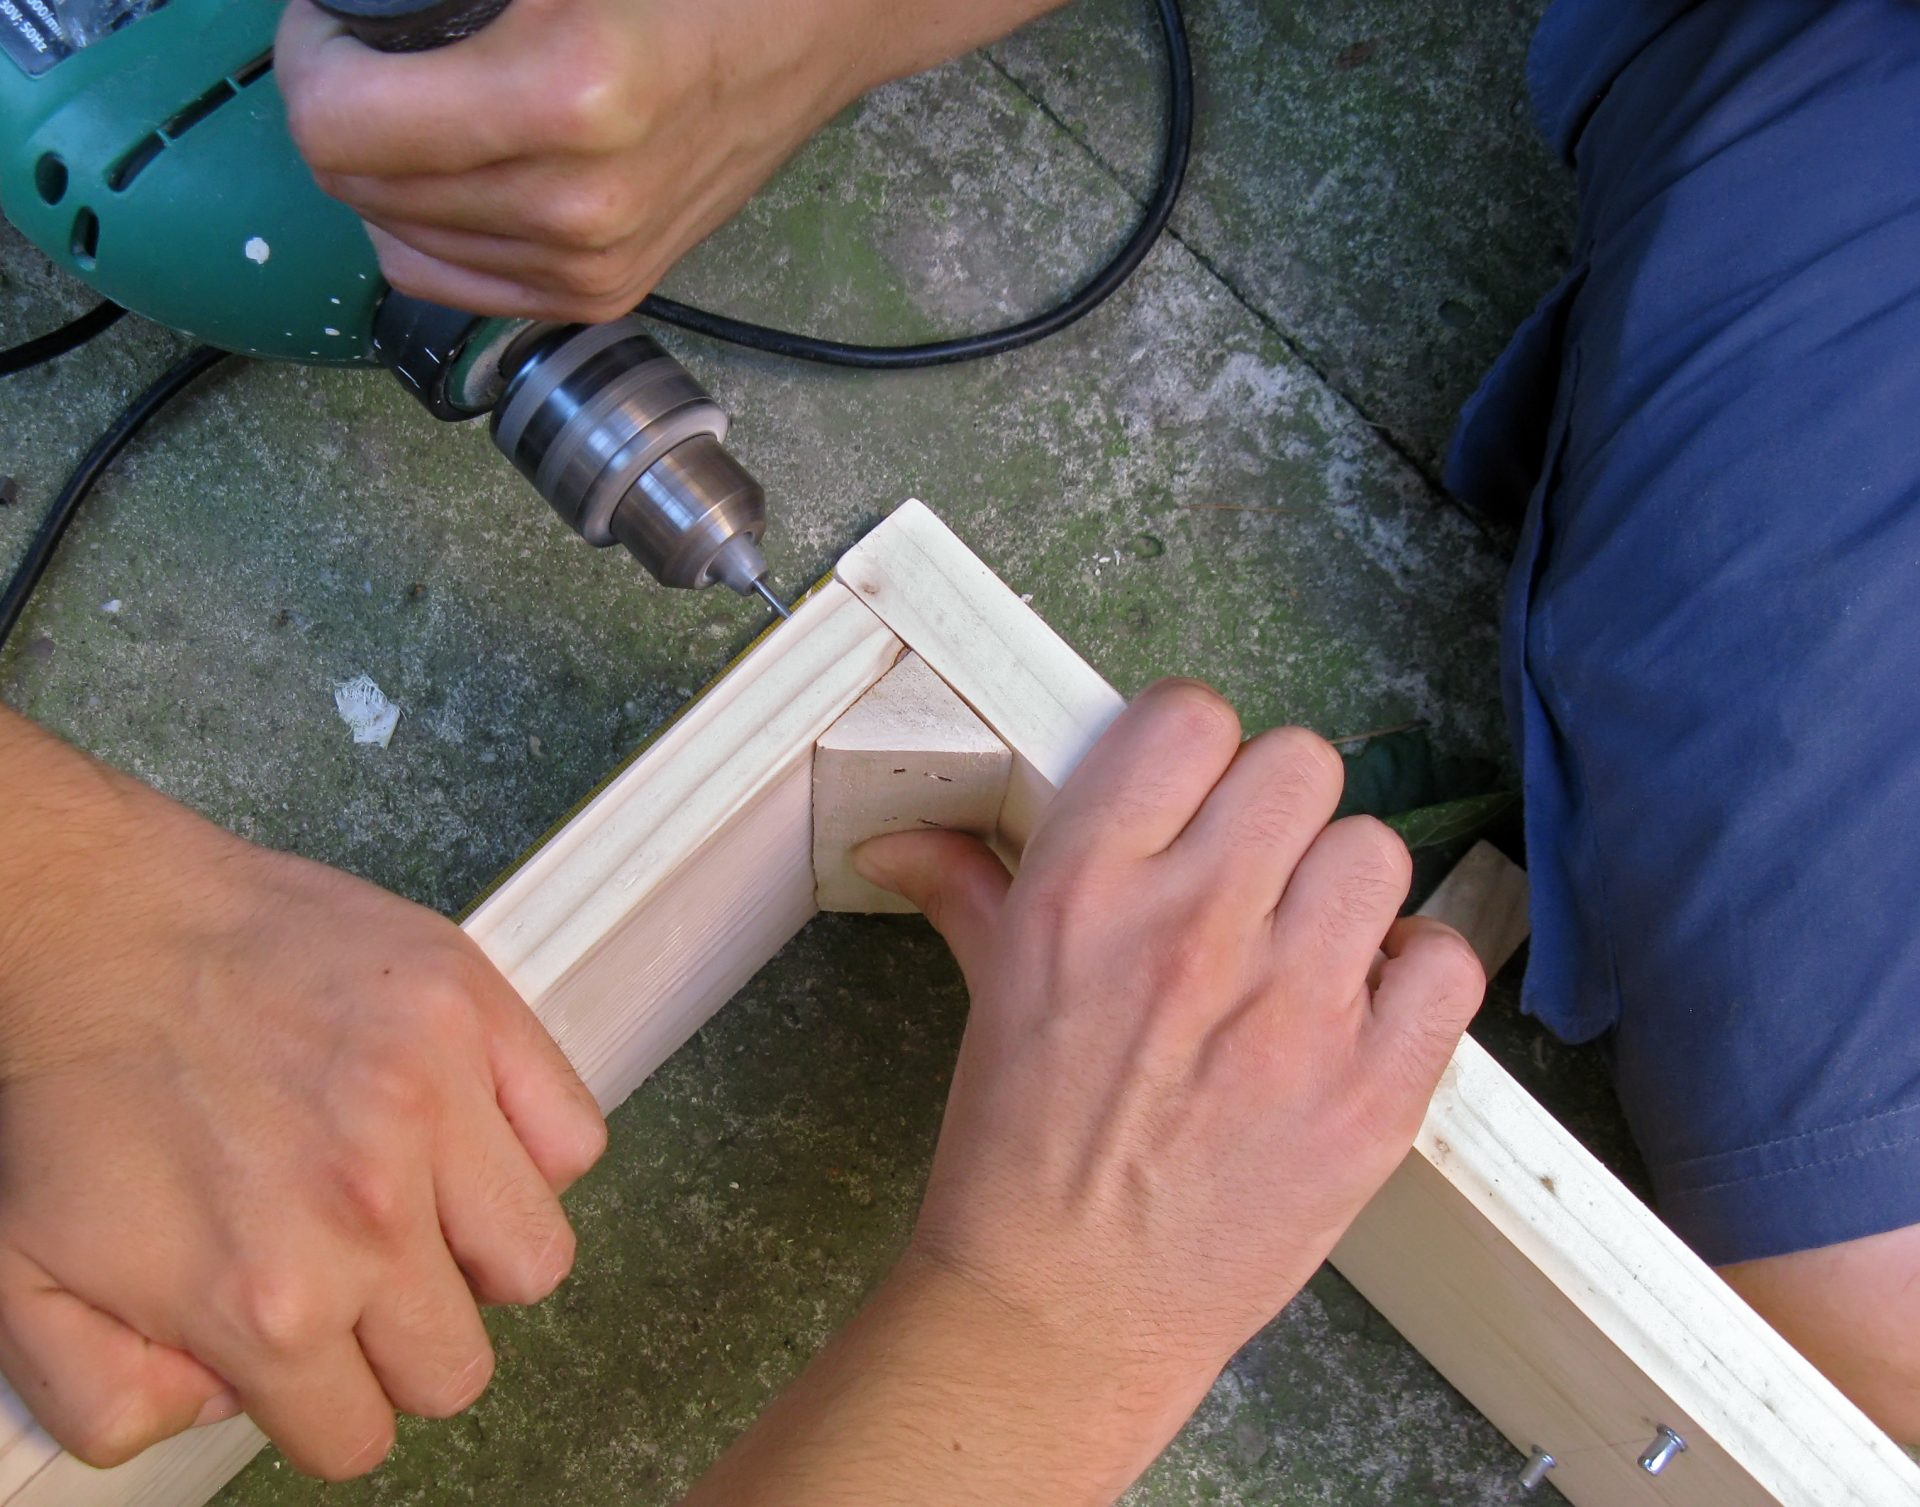 Teamwork - working on building a cabinet. Drilling a hole in wood.